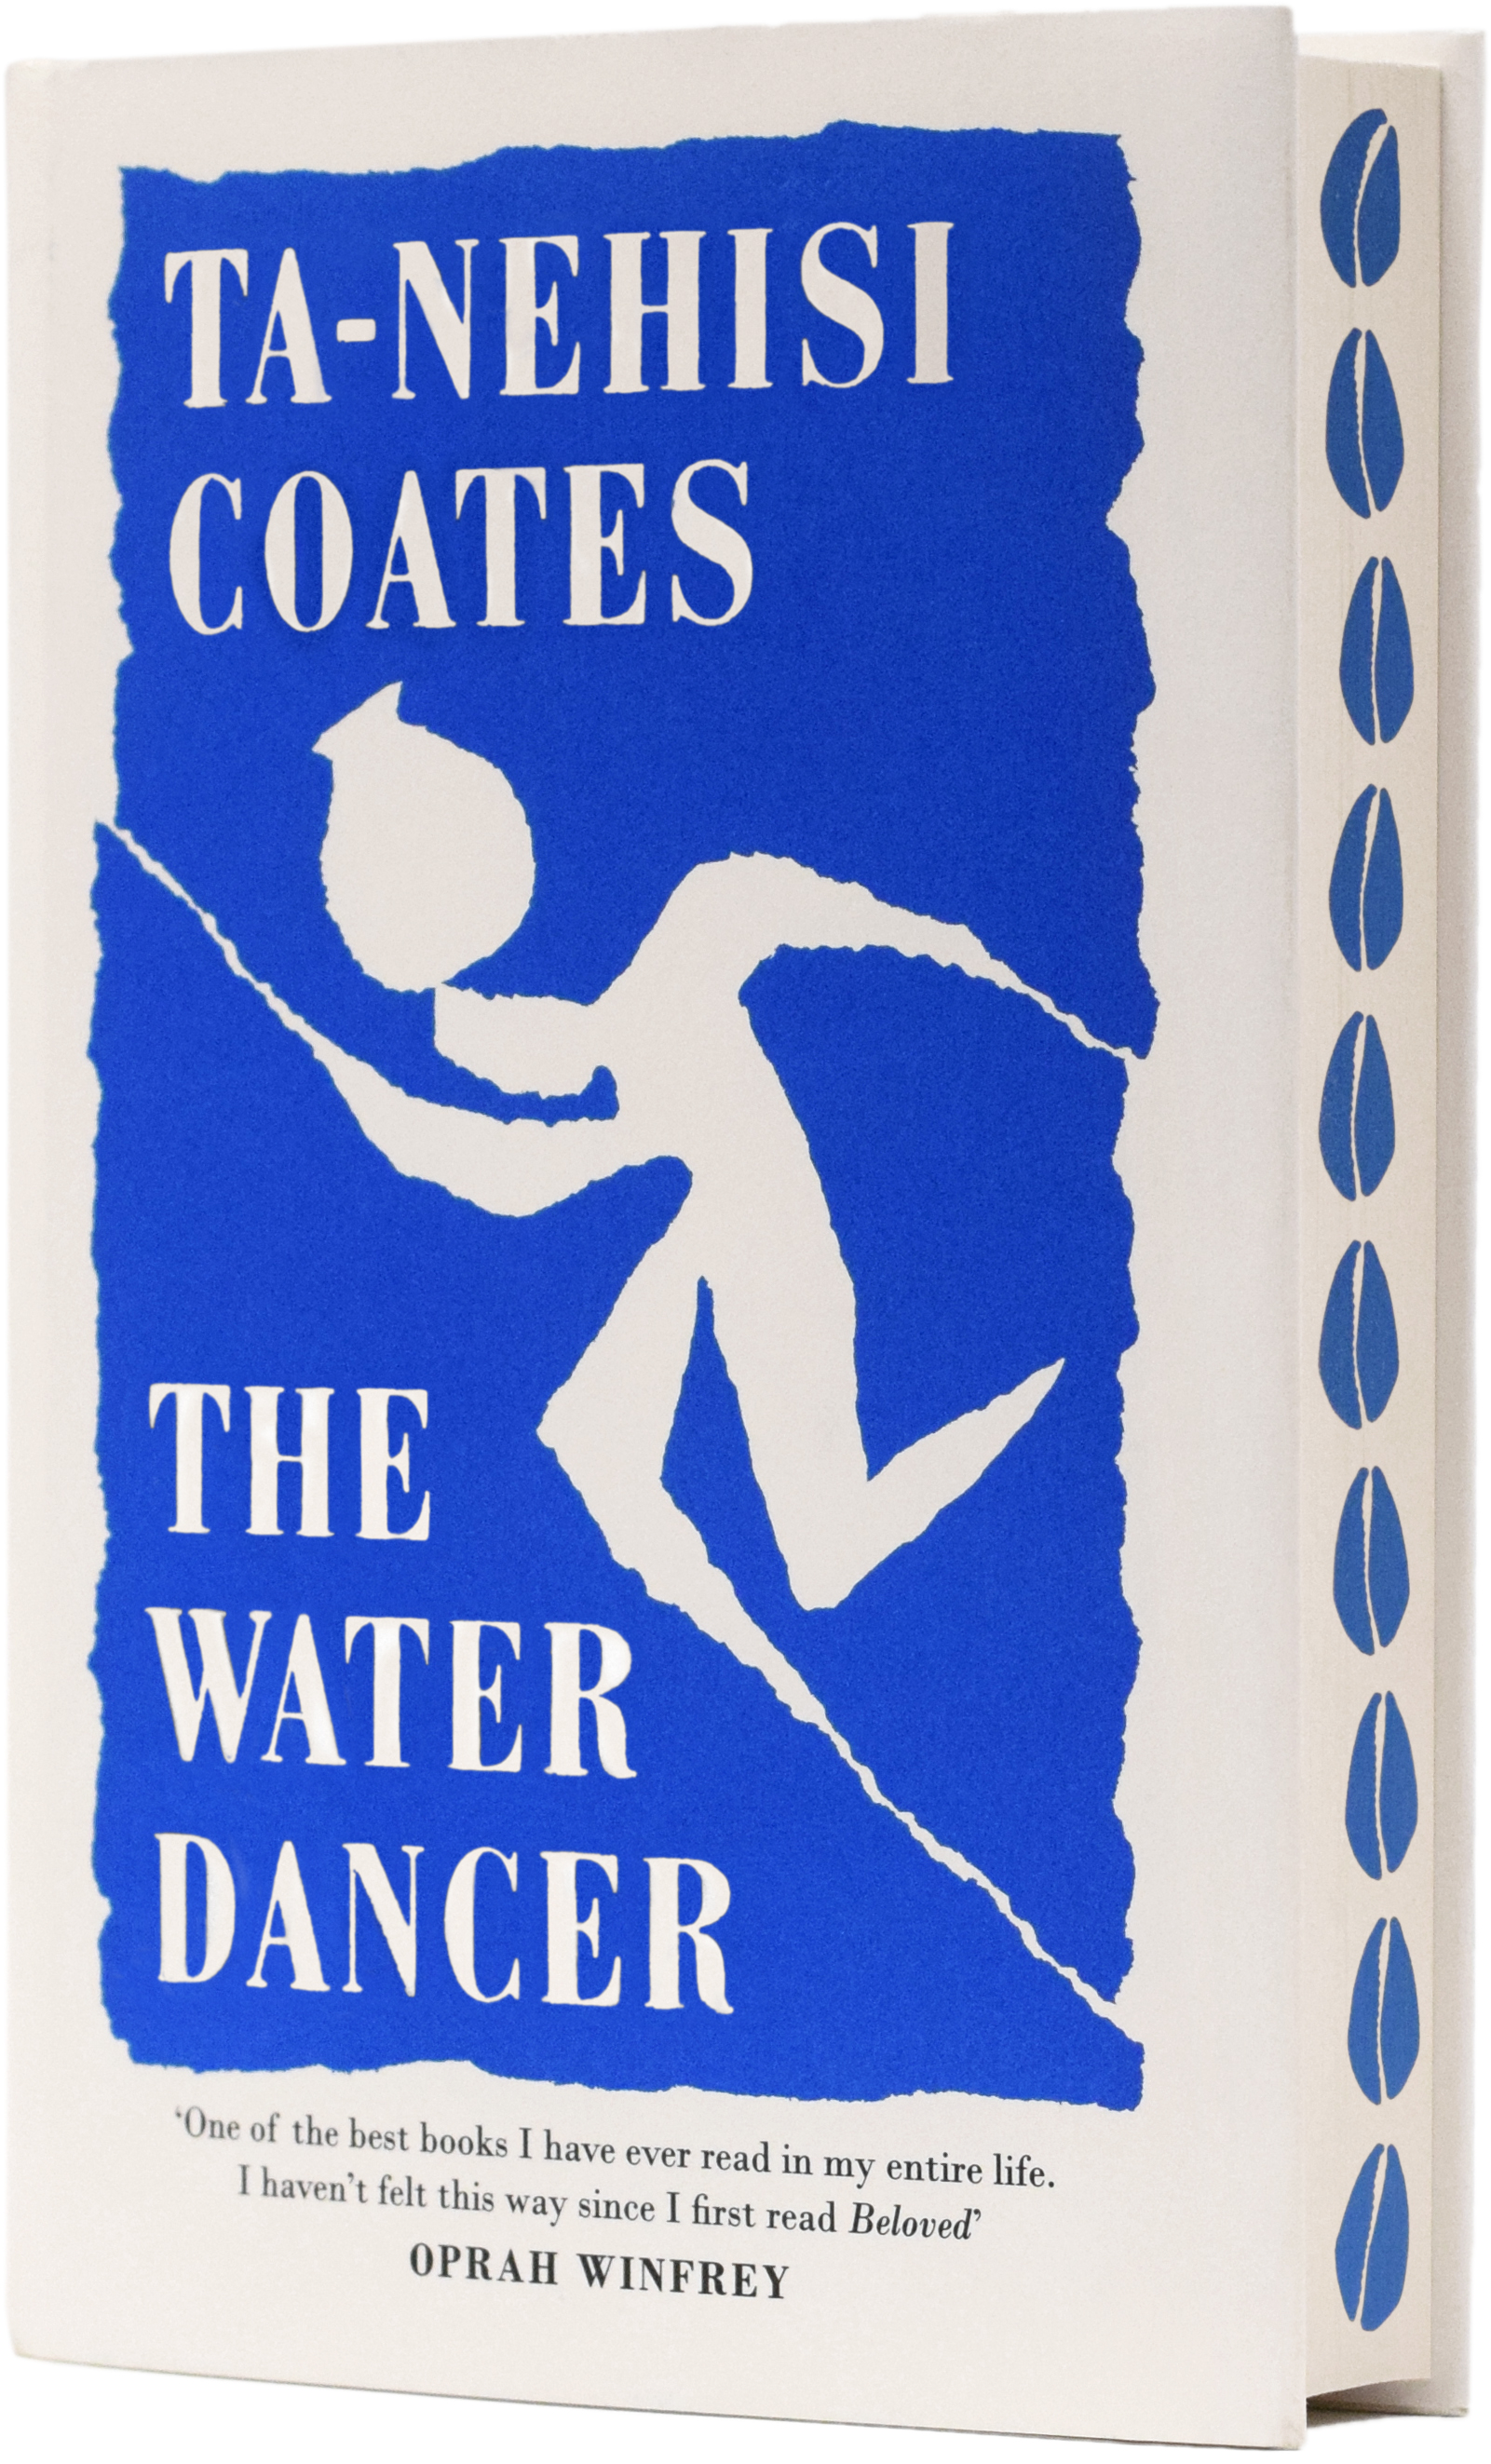 ta nehisi coates the water dancer foyles sprayed edges